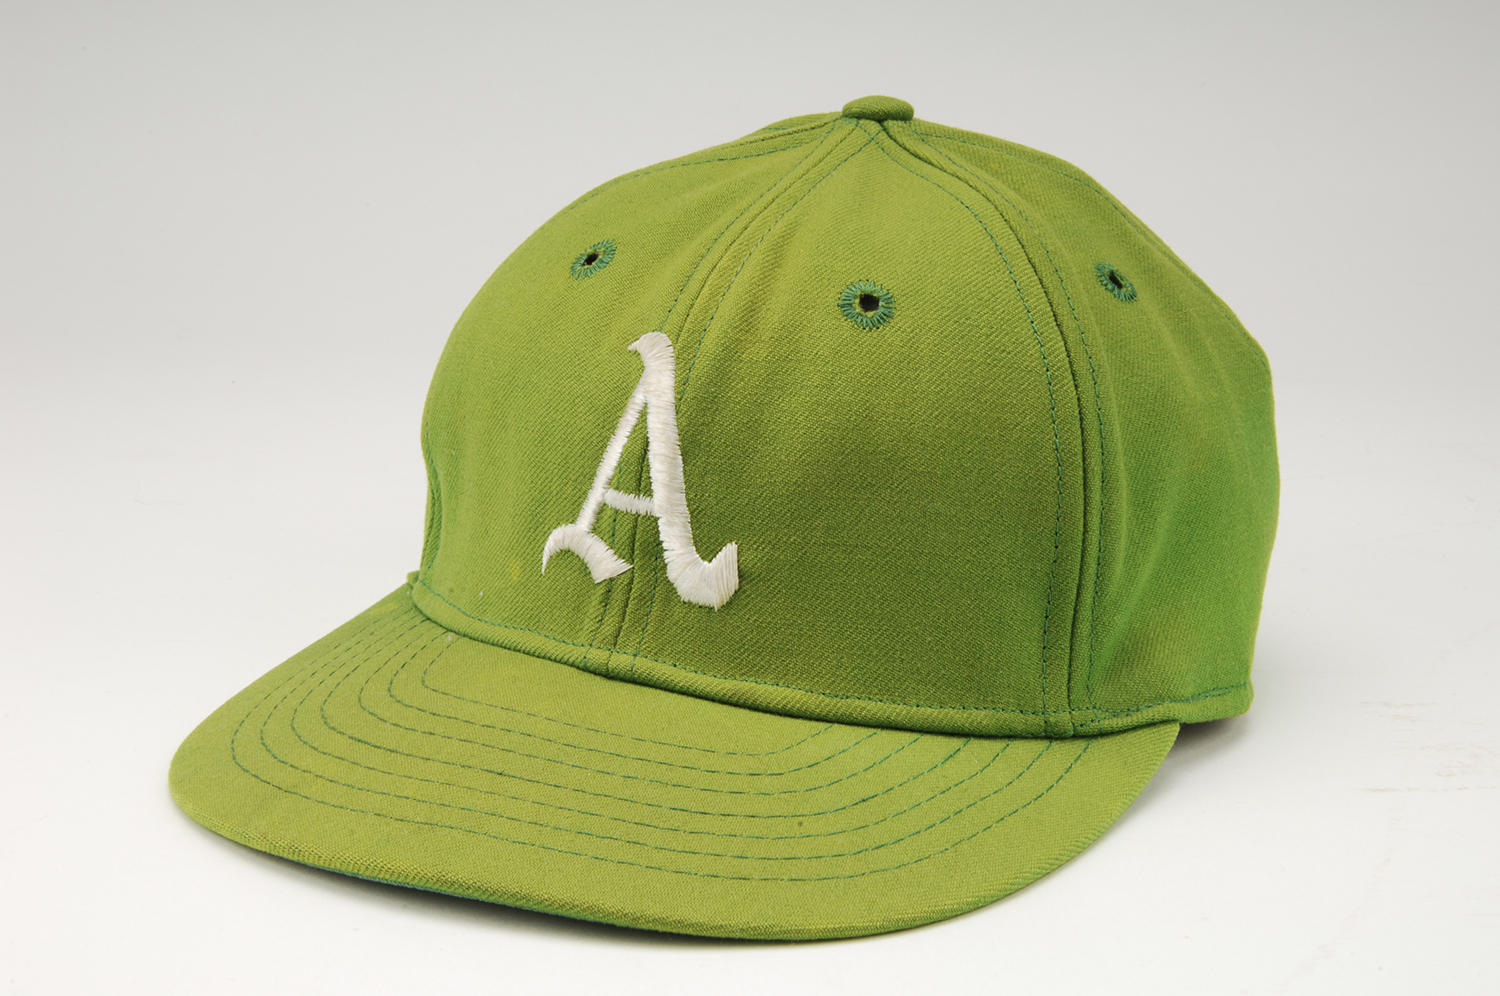 """Hall of Famer Catfish Hunter wore this cap on May 8, 1968 when he threw a perfect game for the Oakland Athletics. <a href=""""https://collection.baseballhall.org/PASTIME/catfish-hunter-perfect-game-cap-1968-may-08-11"""">PASTIME</a> (Milo Stewart Jr./National Baseball Hall of Fame and Museum)"""